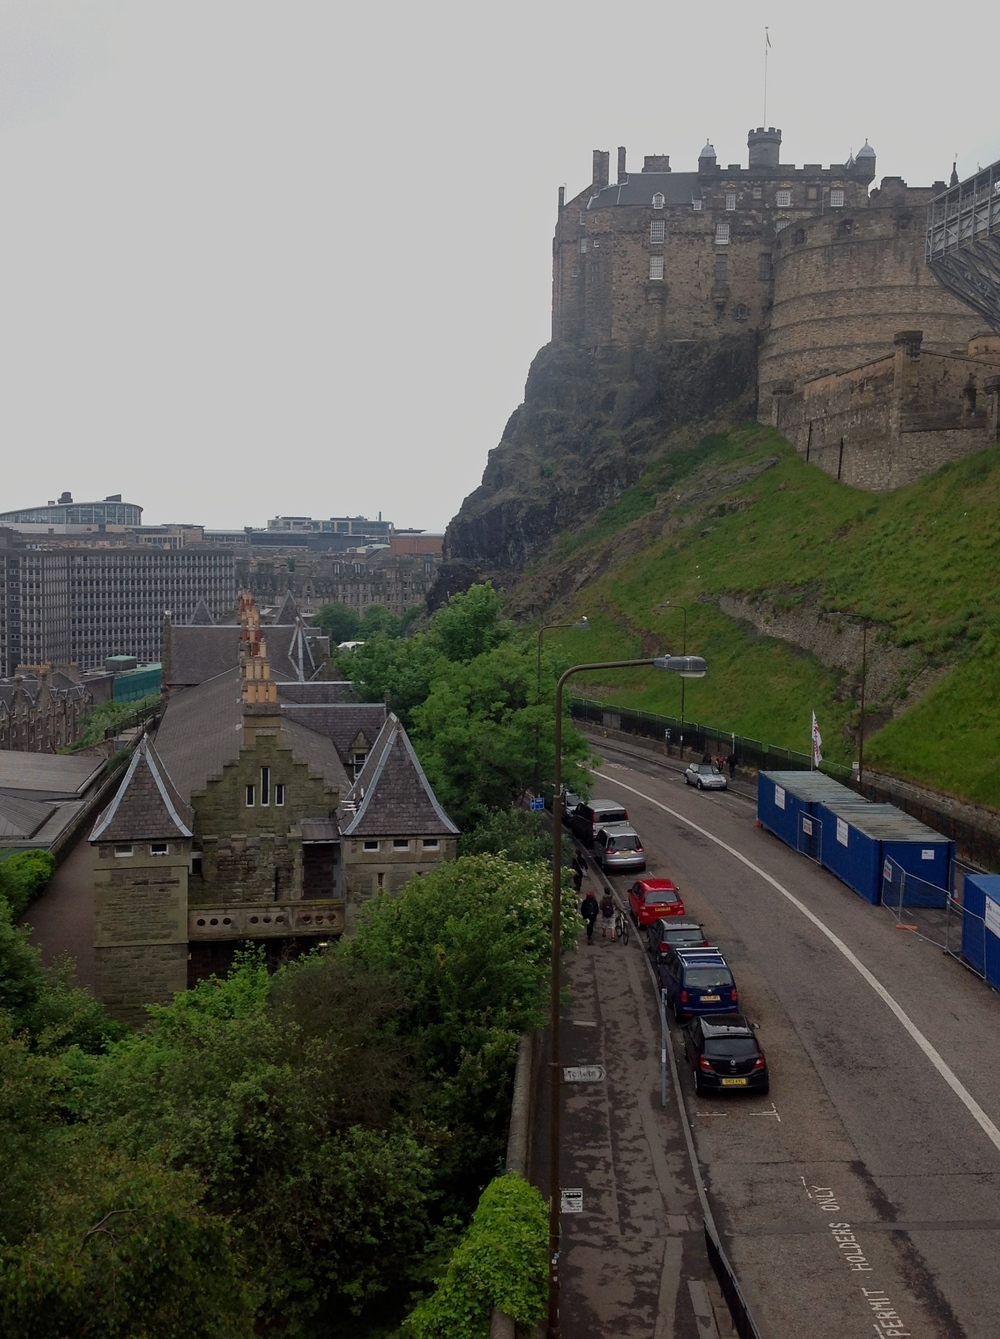 EDINBURGH CASTLE, shot from our window!